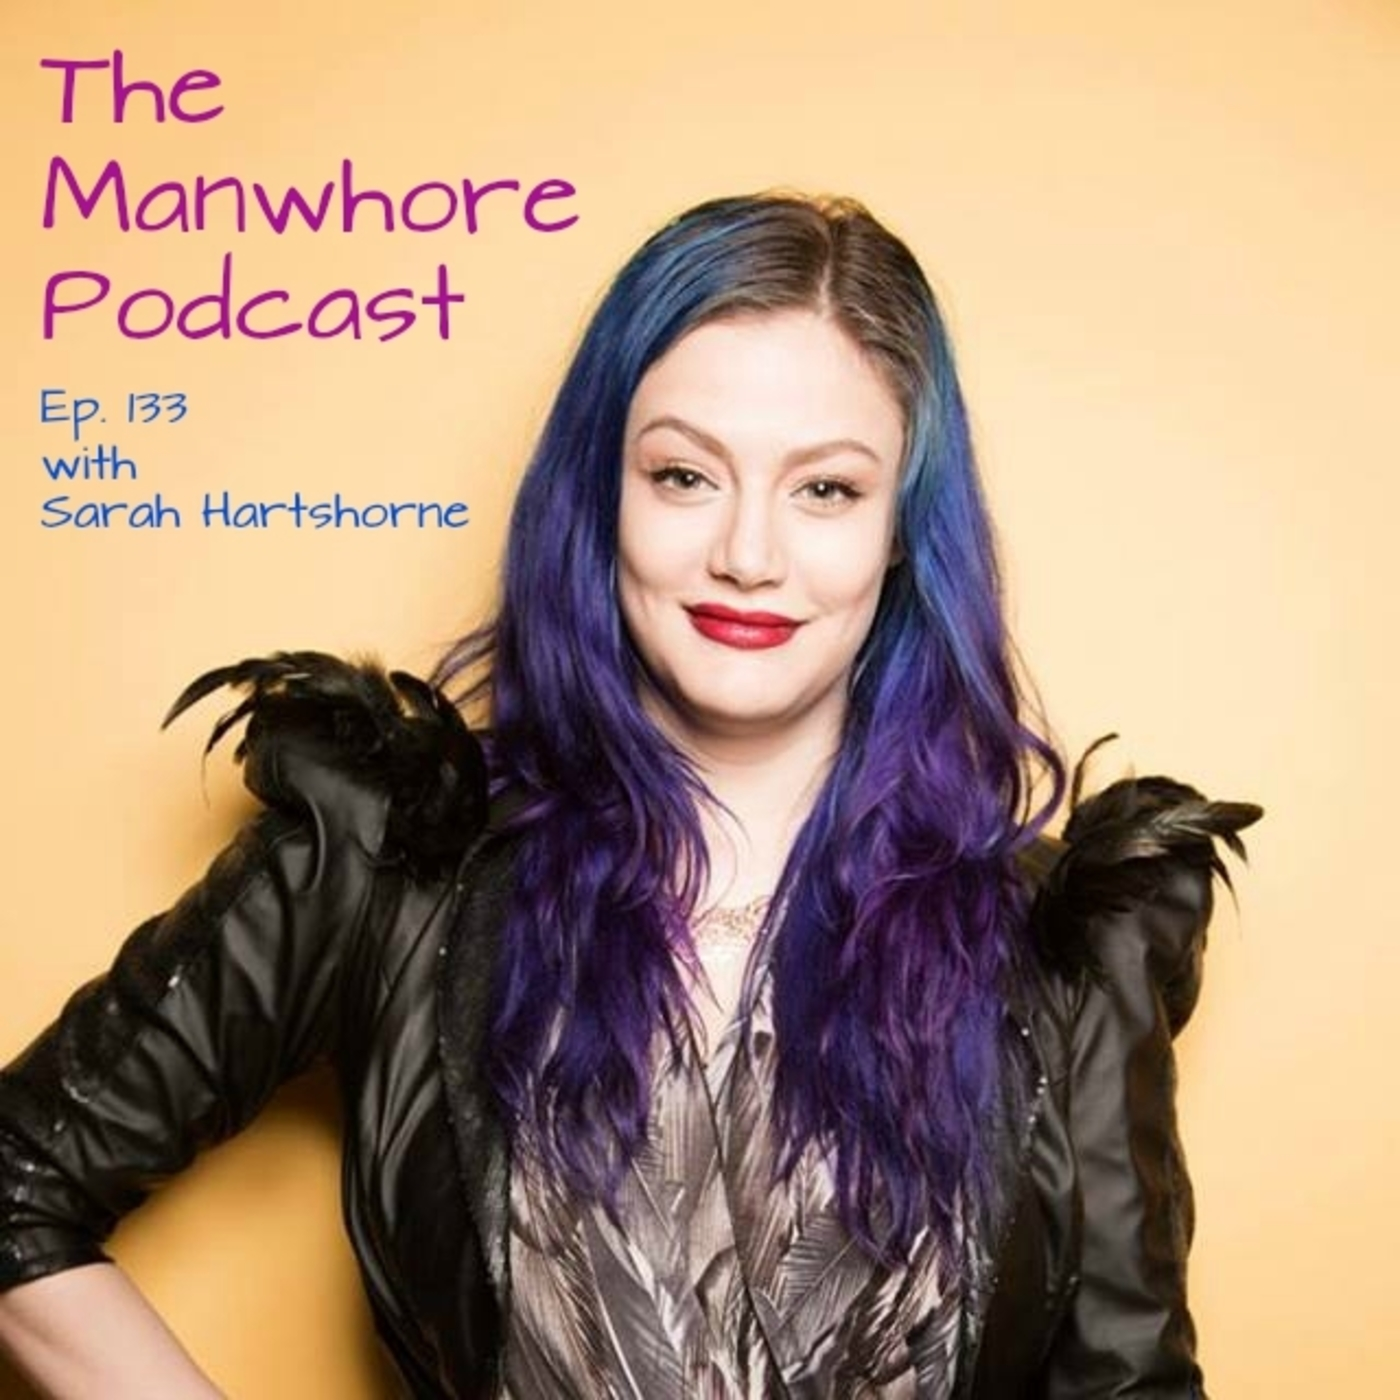 The Manwhore Podcast: A Sex-Positive Quest - Ep. 133: Vote No on Prop 60 / Sarah Hartshorne Loves Gay Porn & Her Husband